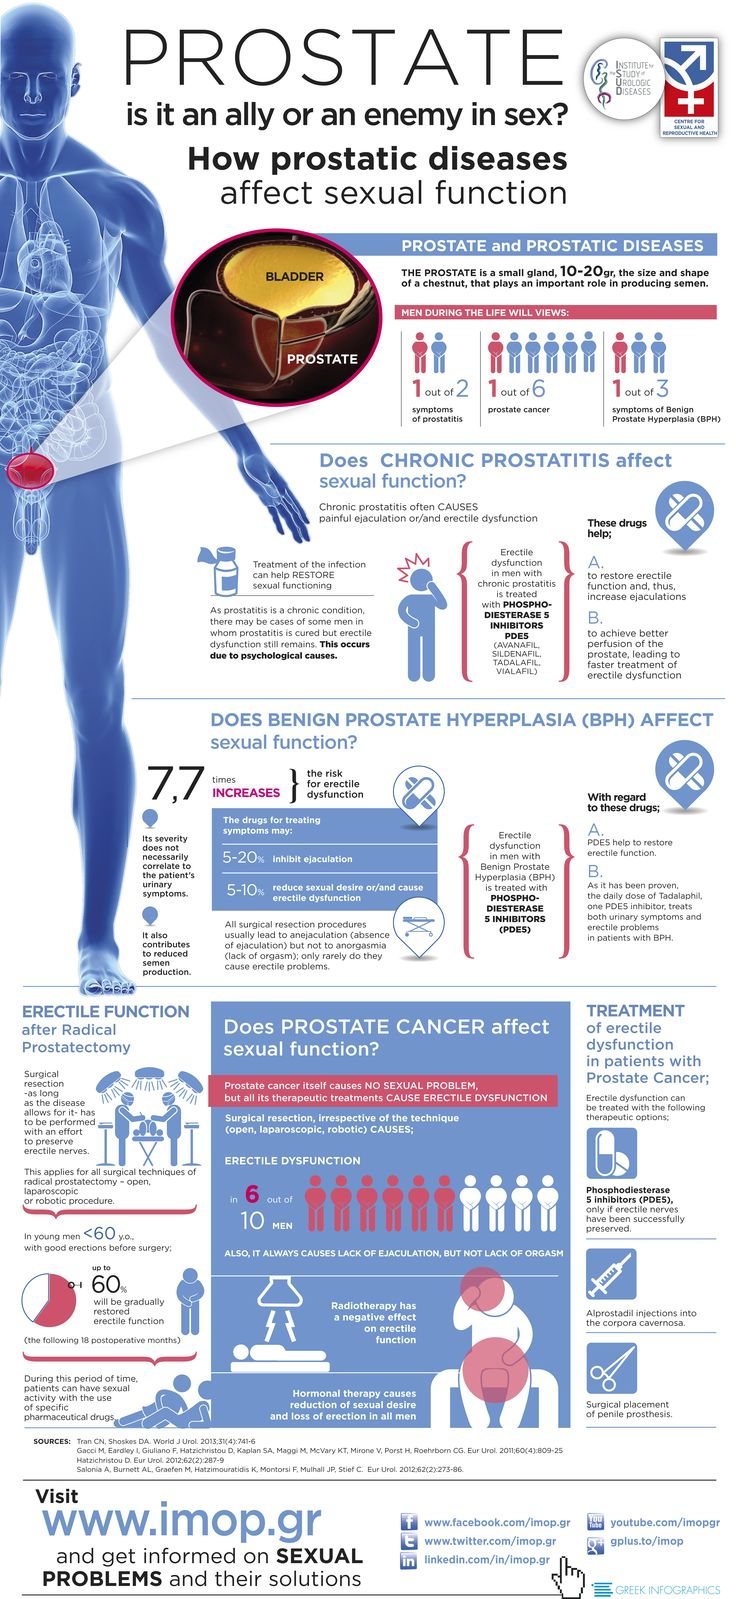 "The institute study urological diseases in collaboration with the Center for Sexual and Reproductive Health created a infographic on ""Prostate: Is it an ally or enemy of the sex?"" Read the infographic to learn if Benign Prostate Hyperplasia (#BHP) affect sexual function or if the #ProstateCancer affect sexual function. Finally read about the treatment of #erectileDysfunction in patients with prostate cancer."